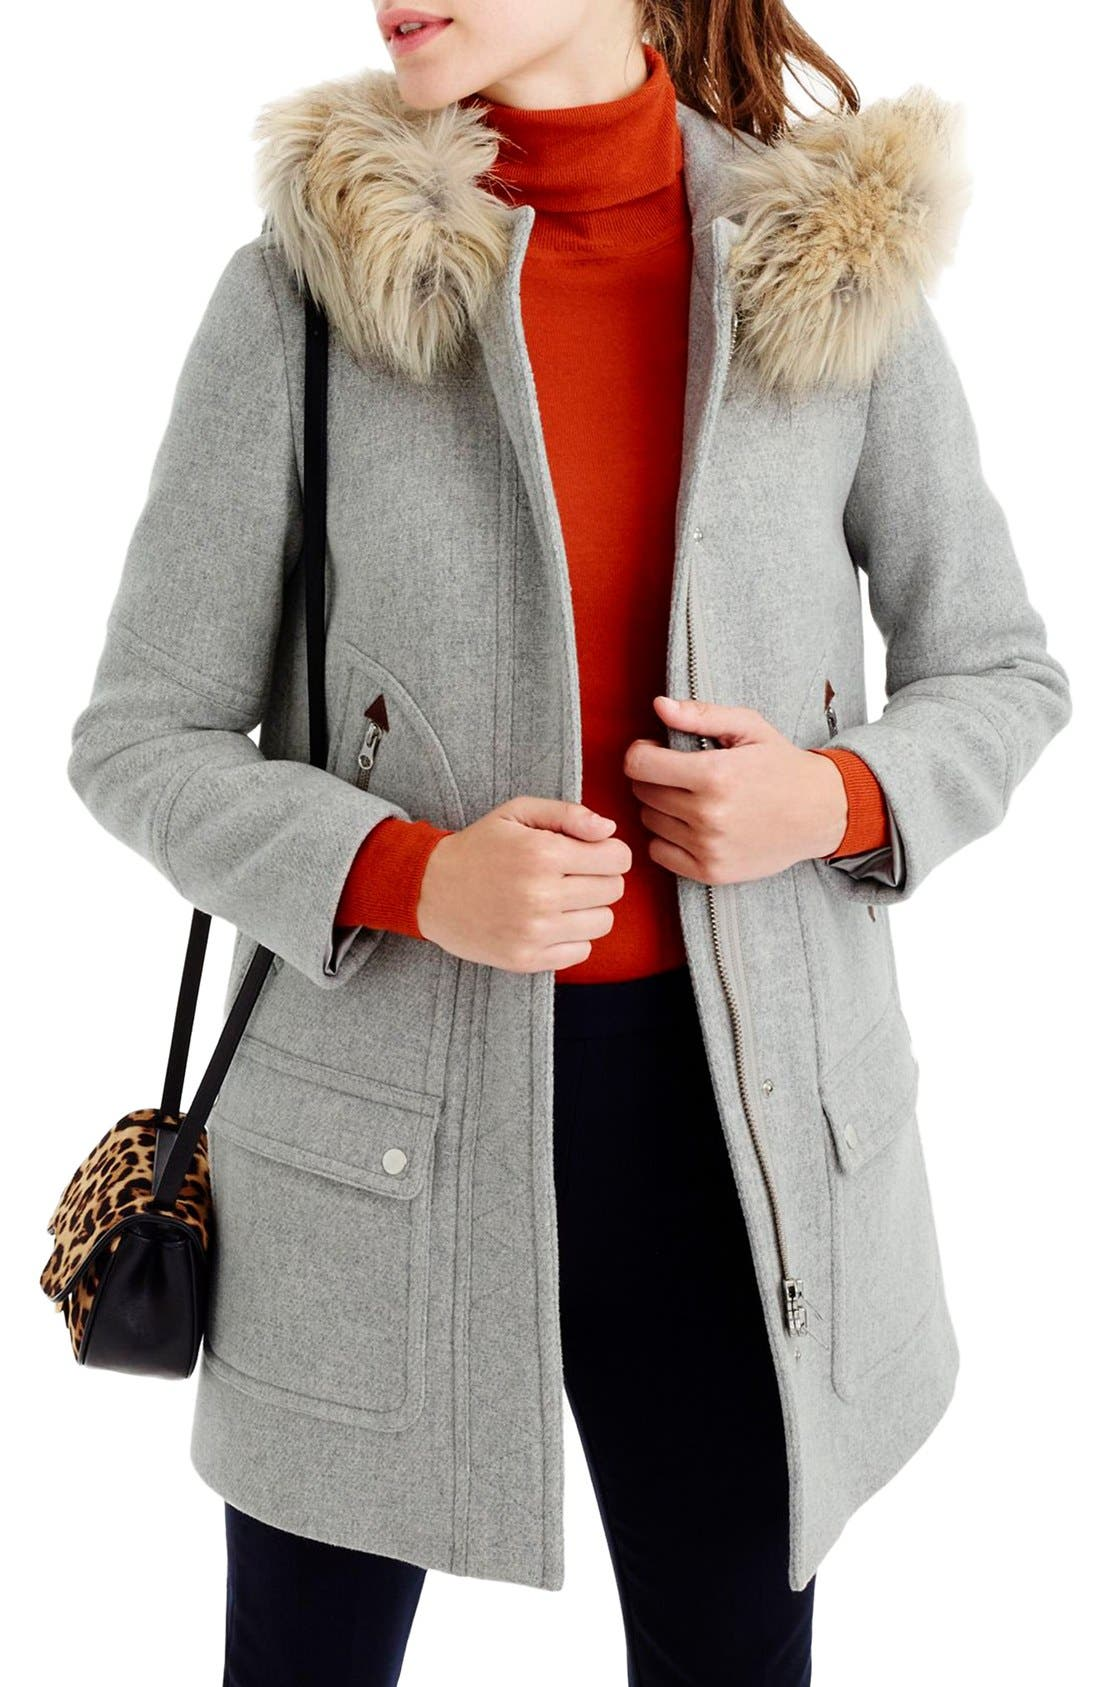 Alternate Image 1 Selected - J.Crew Chateau Stadium Cloth Parka with Faux Fur (Regular & Petite)